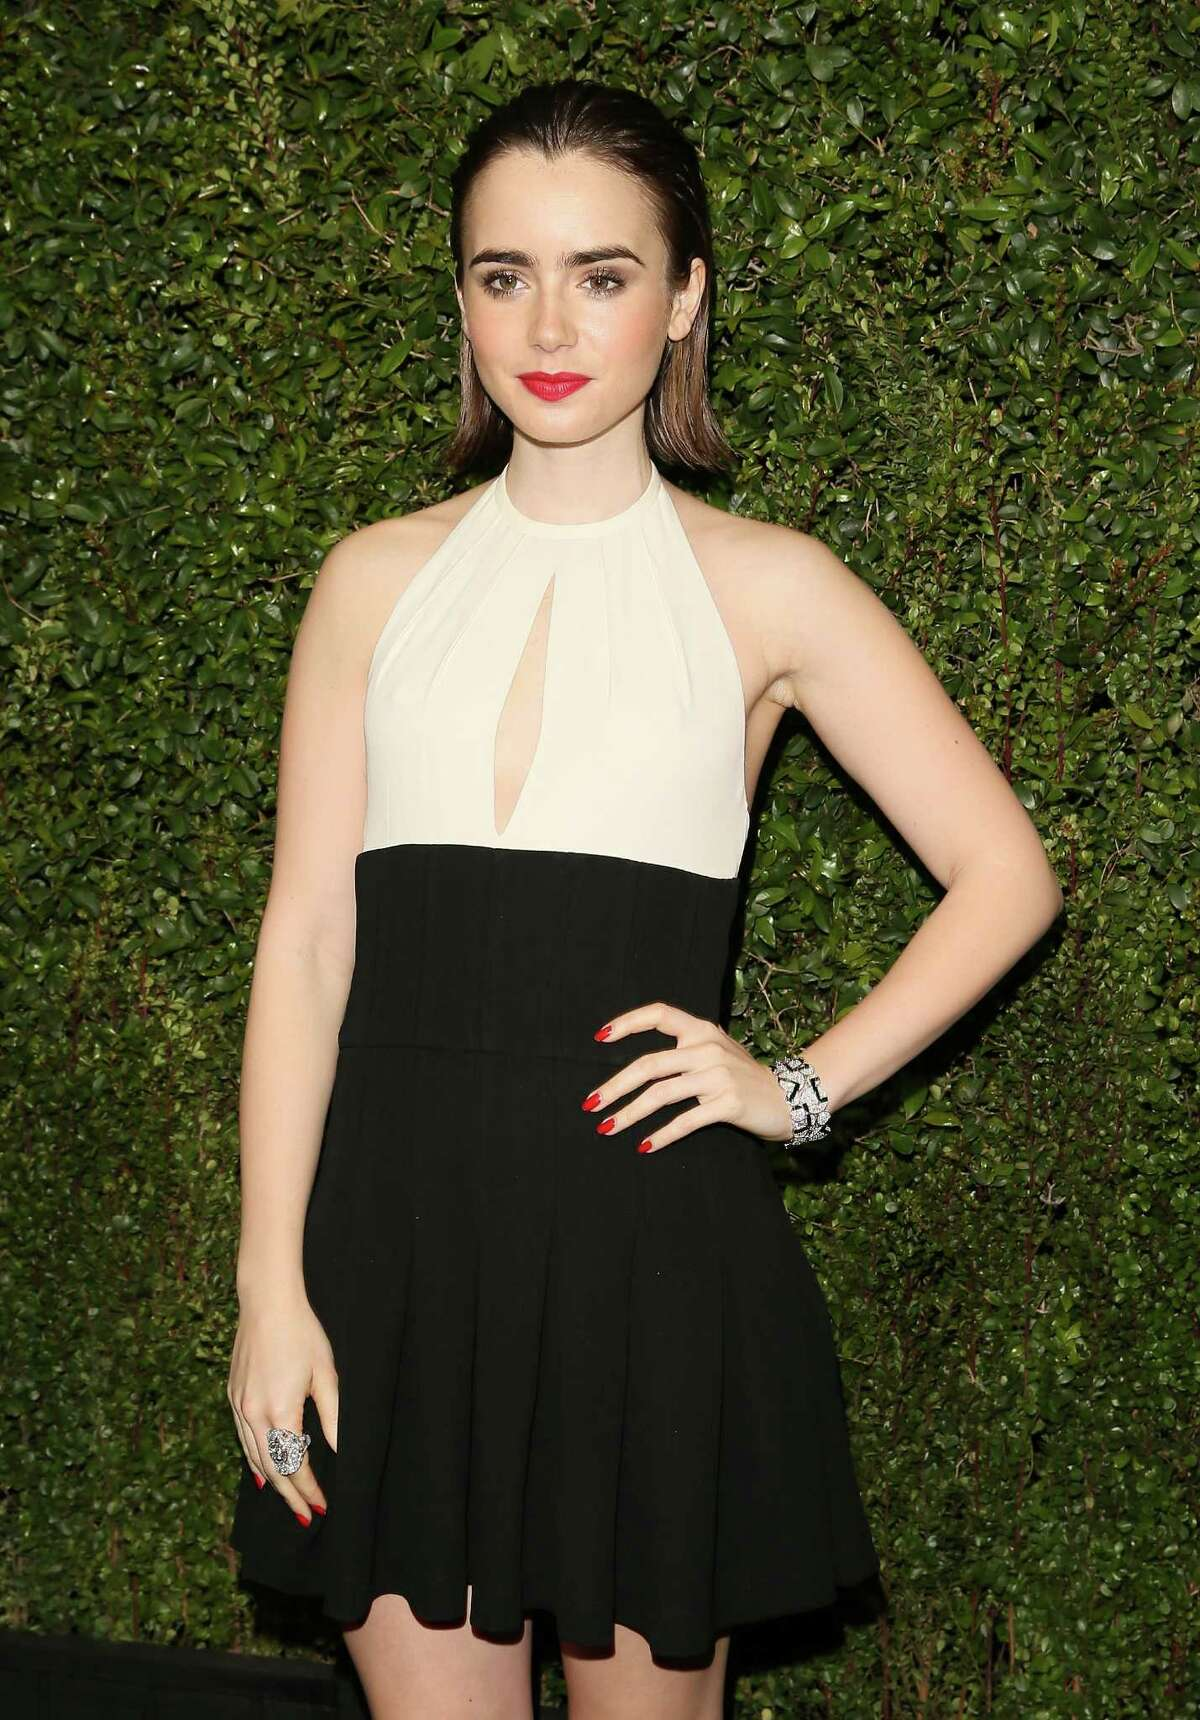 8. Lily Pictured: Lily Collins attends the Chanel And Charles Finch Pre-Oscar Dinner at Madeo Restaurant on February 21, 2015 in West Hollywood, California.